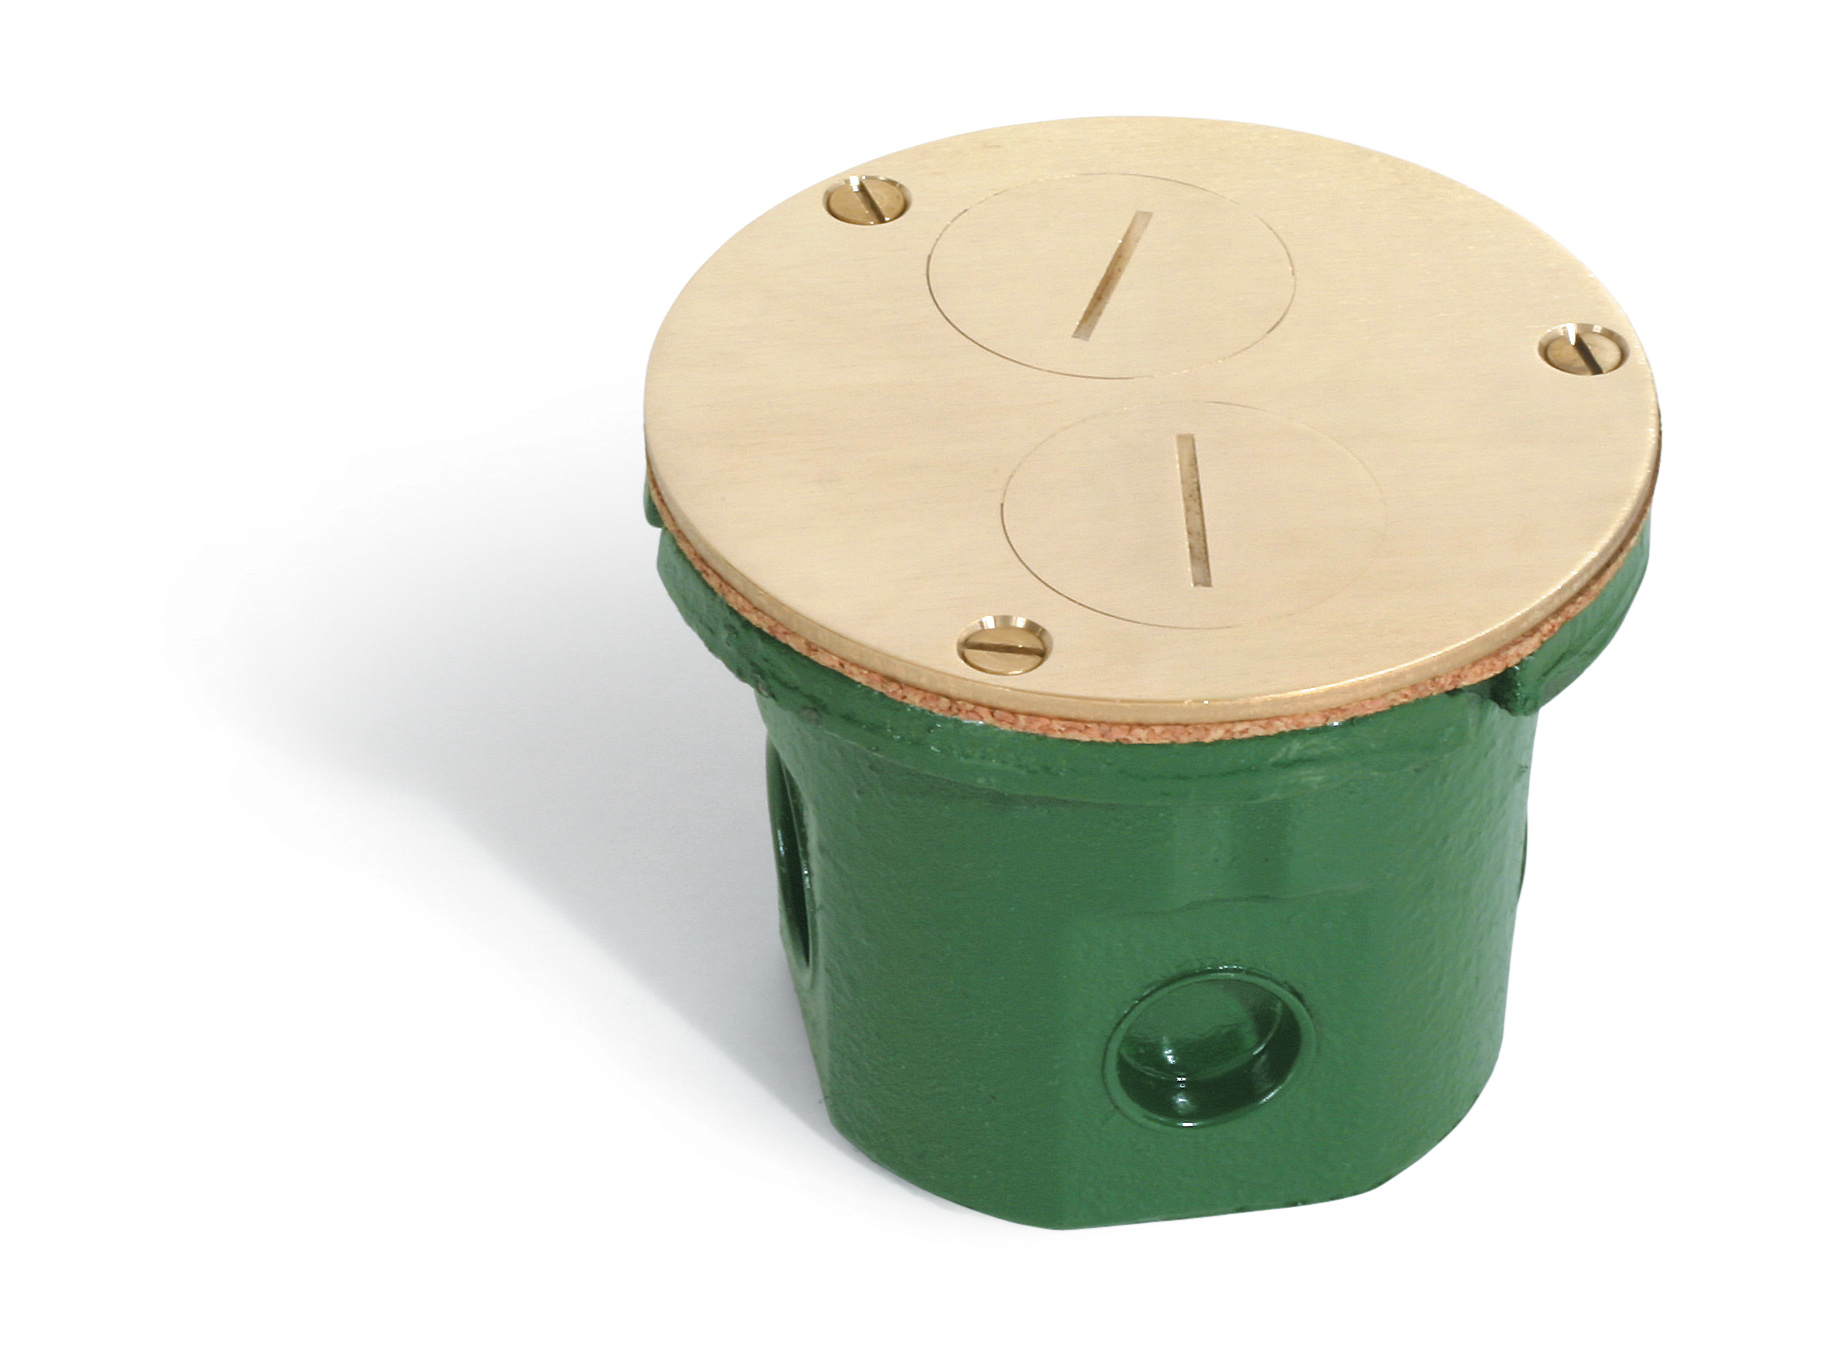 Lew Electric Fittings,812-DFB,Lew Electric 812 Floor Box With 523-DP Brass Cover and 15 A Receptacle, Cast Iron, 14.5 cu-in